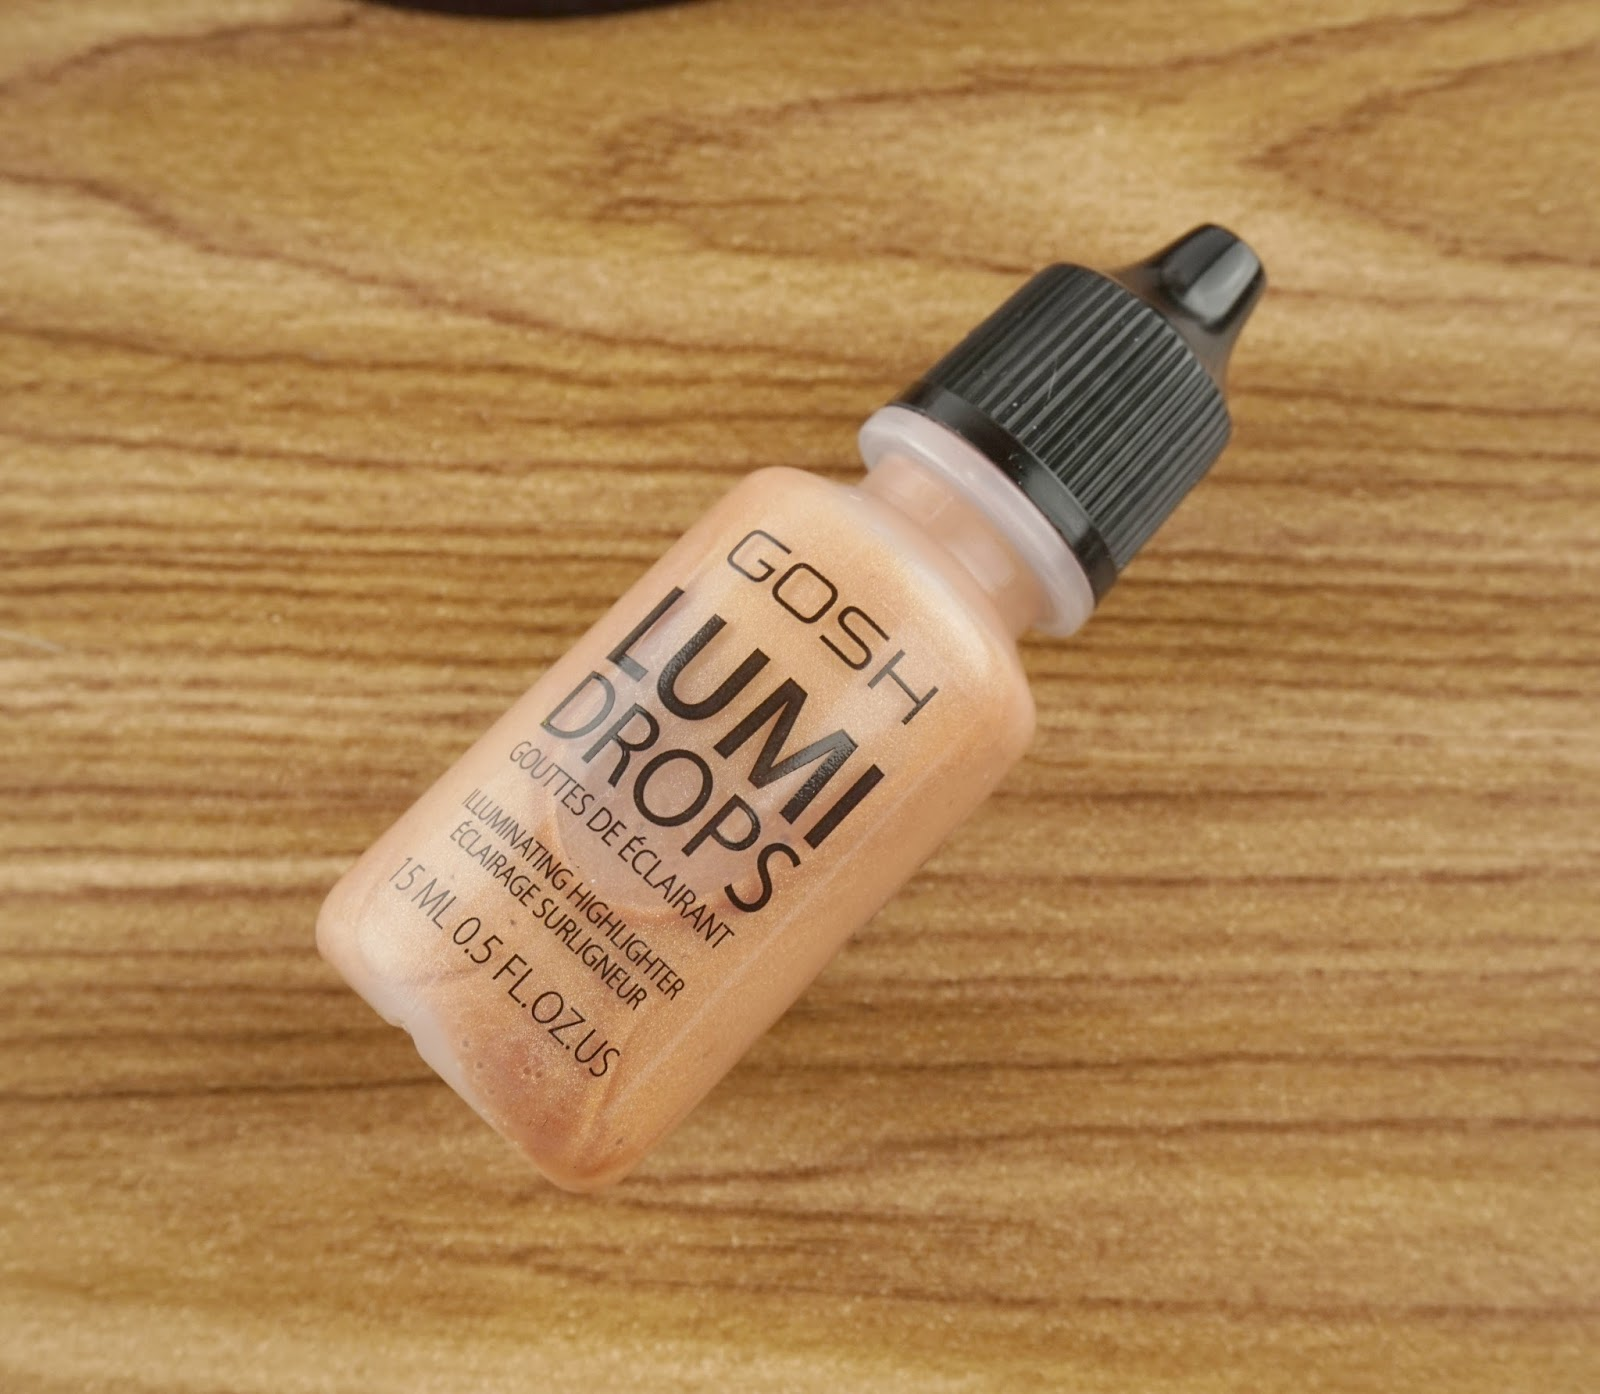 GOSH Cosmetics core products review lumi drops  peach